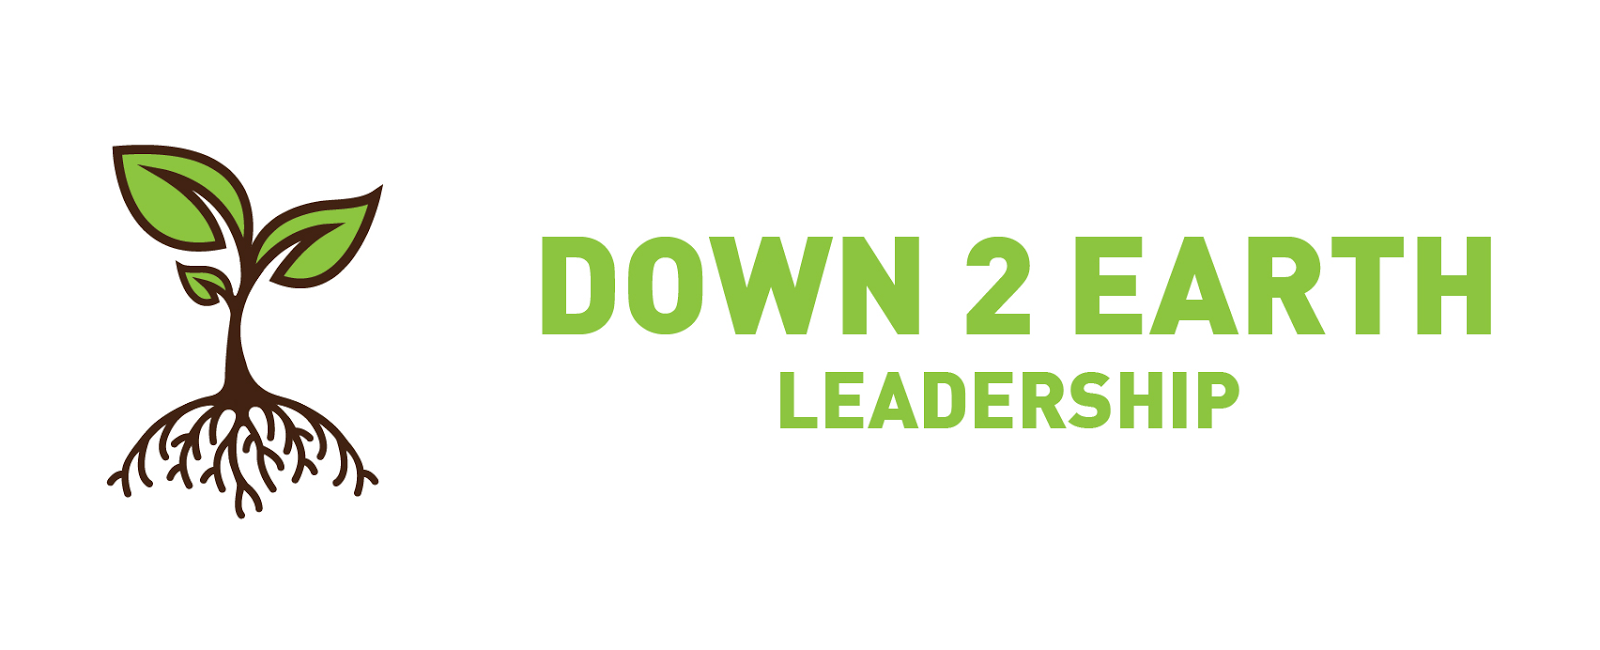 Down 2 Earth Leadership